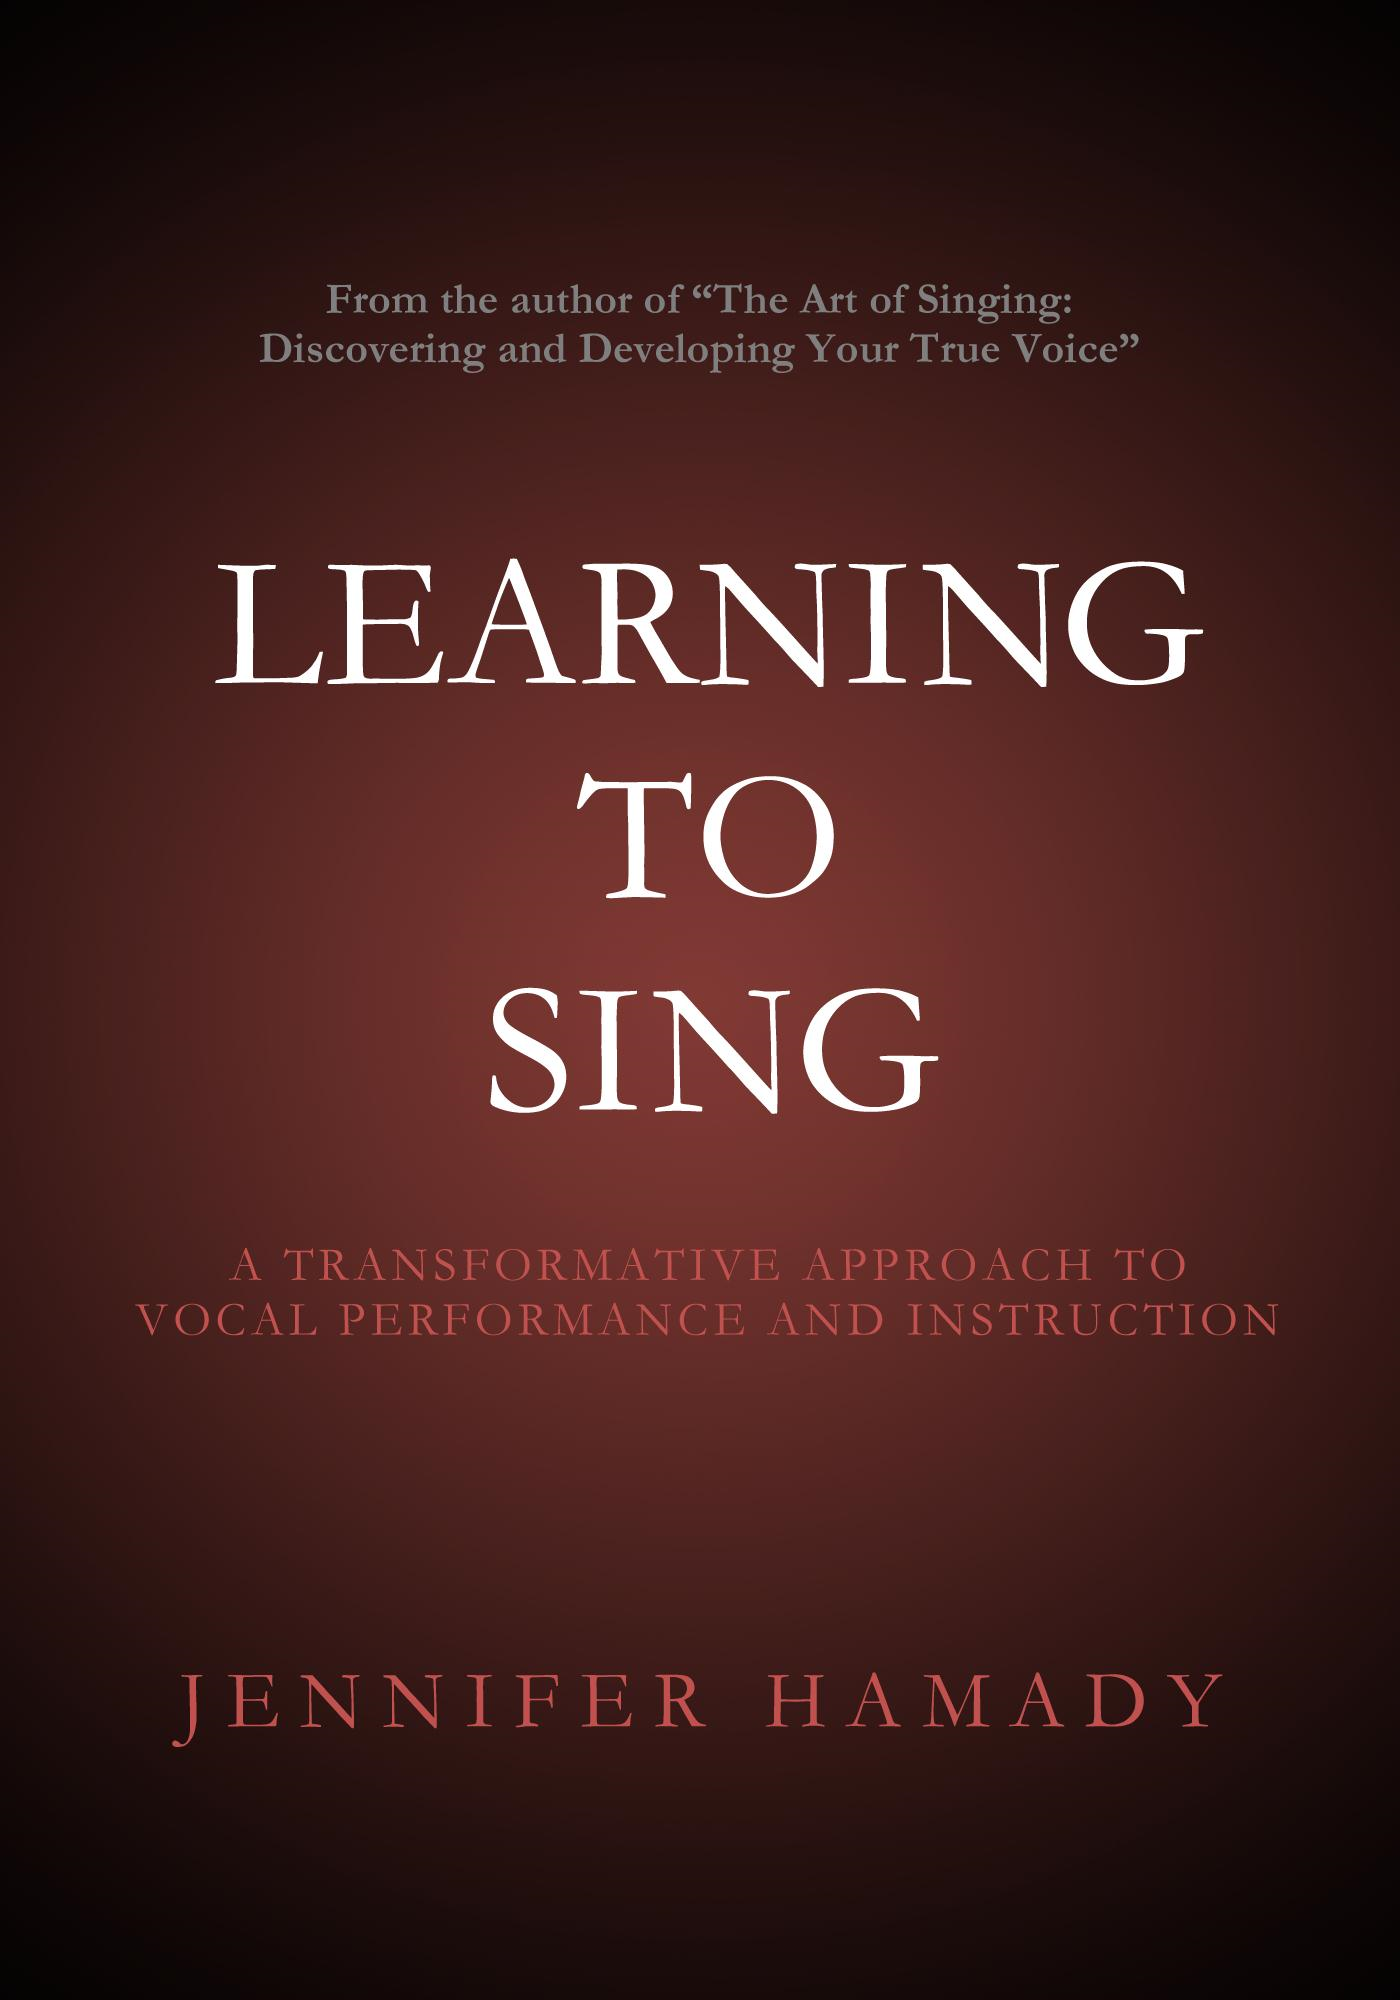 Learning To Sing: A Transformative Approach to Vocal Performance and Instruction